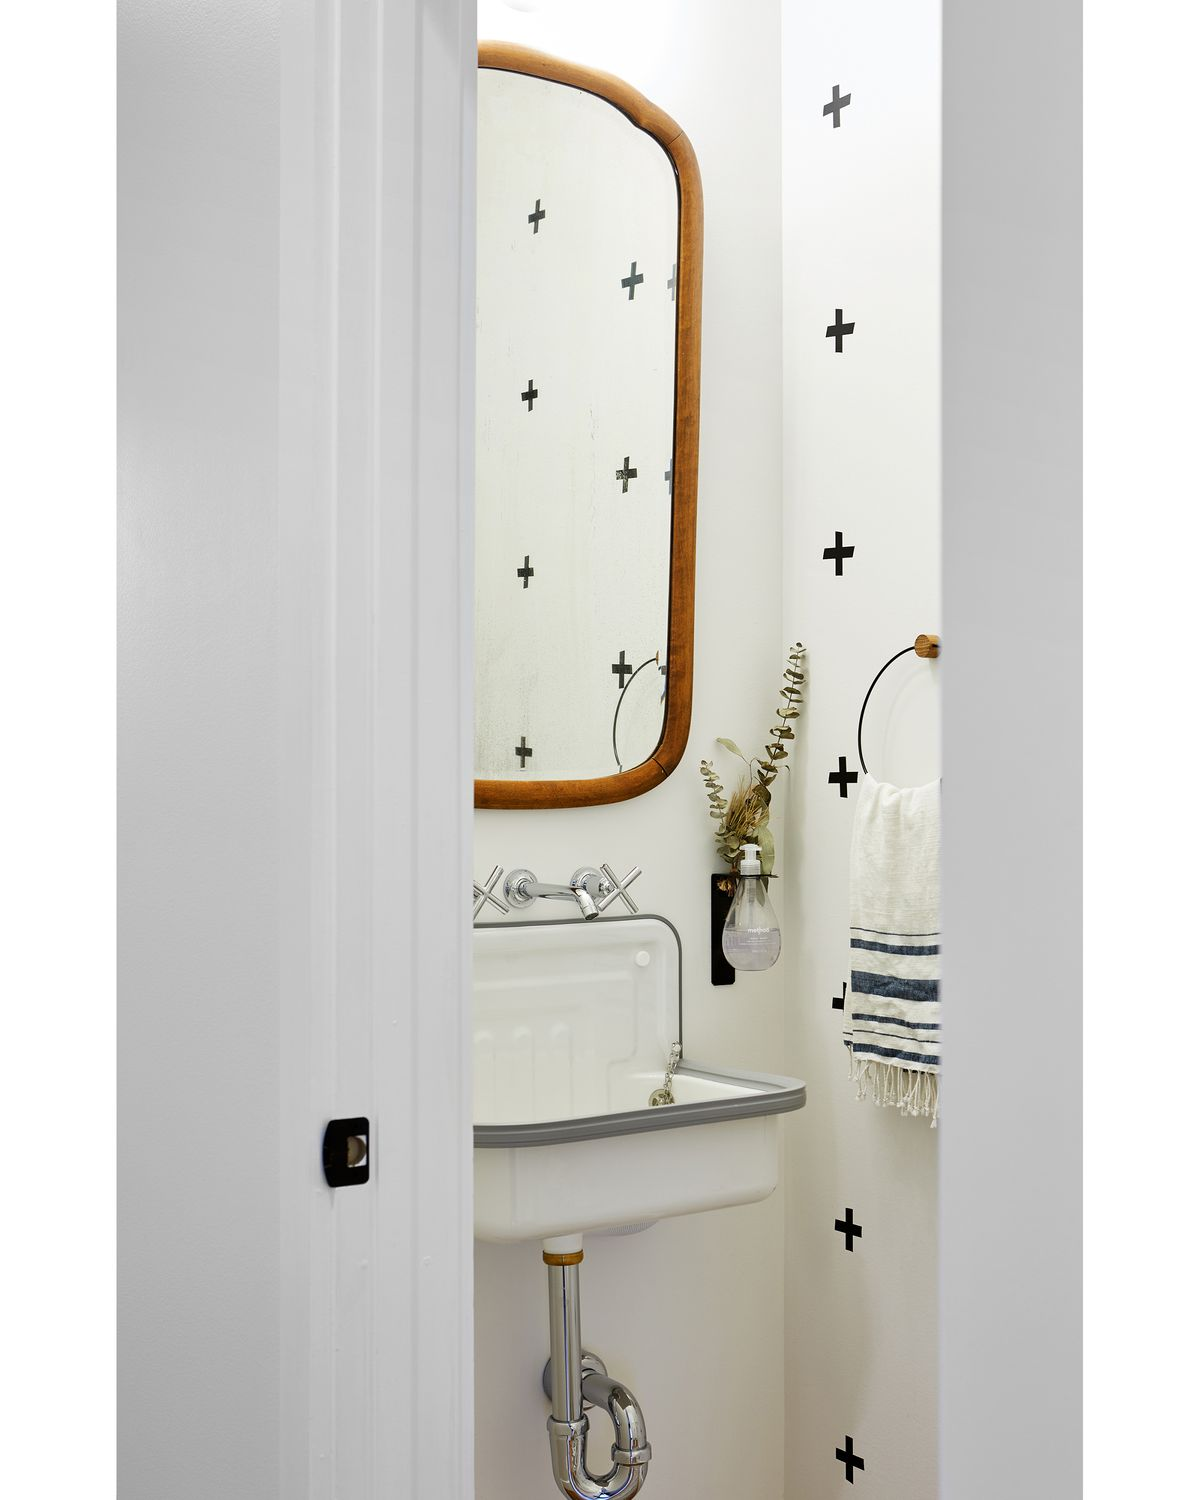 A bathroom. The wall is white with a black cross pattern. There is a wooden mirror, a sink, and a towel holder holding a blue and white patterned hand towel.